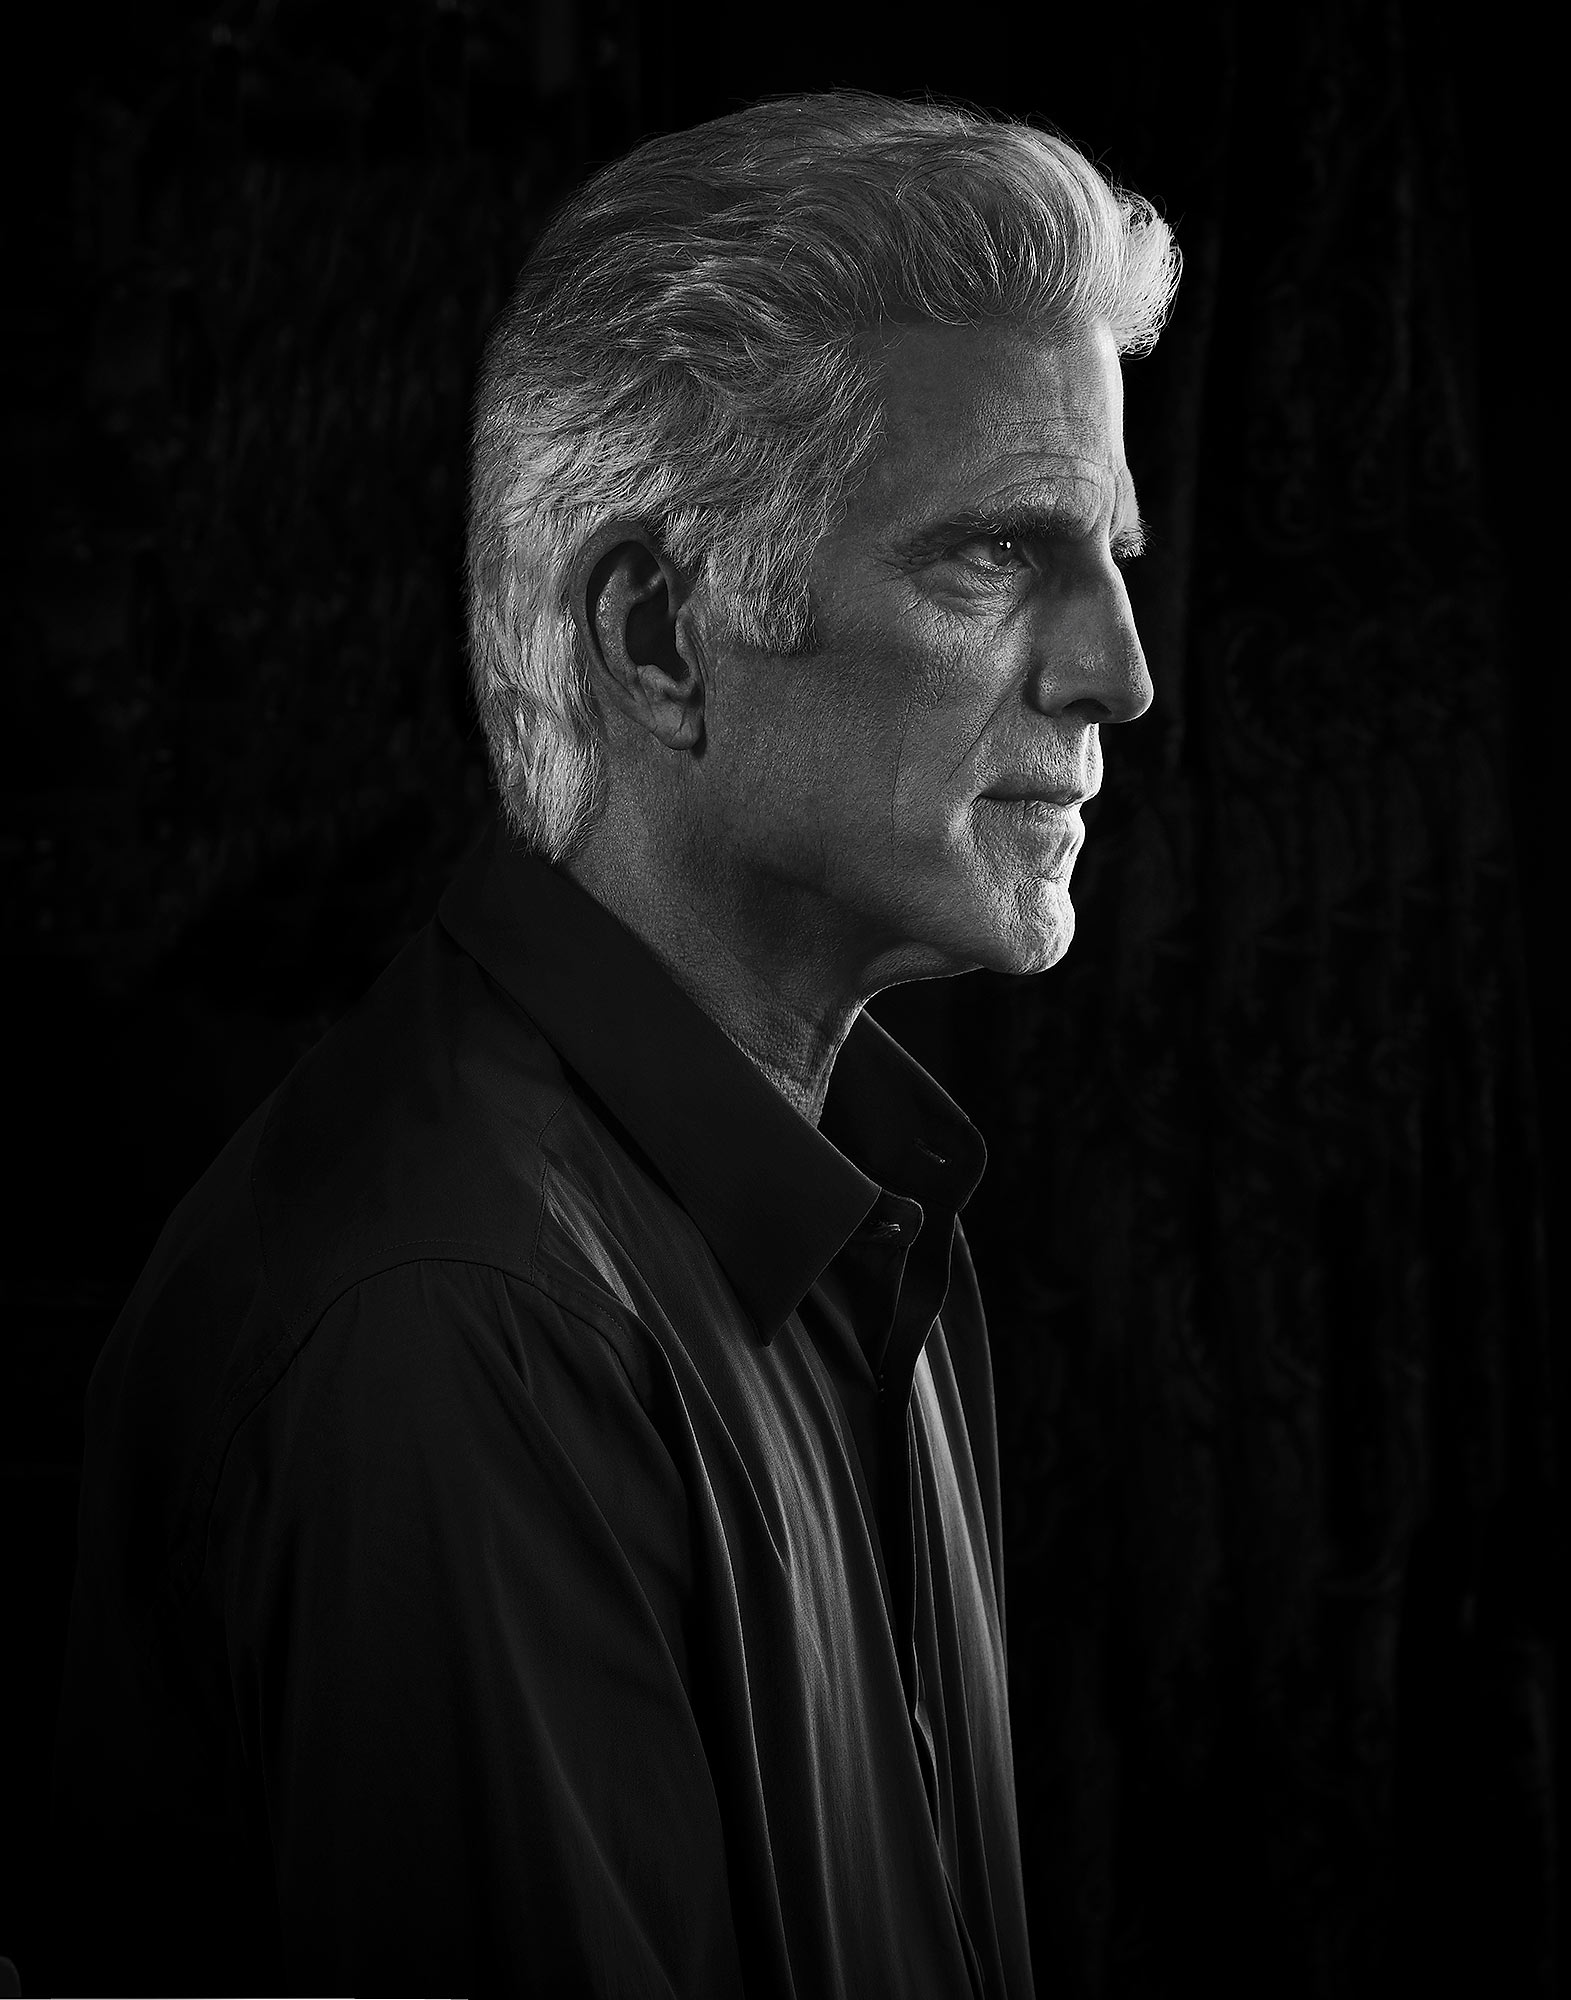 Ted-Danson-by-Robert-Ascroft-2.jpg